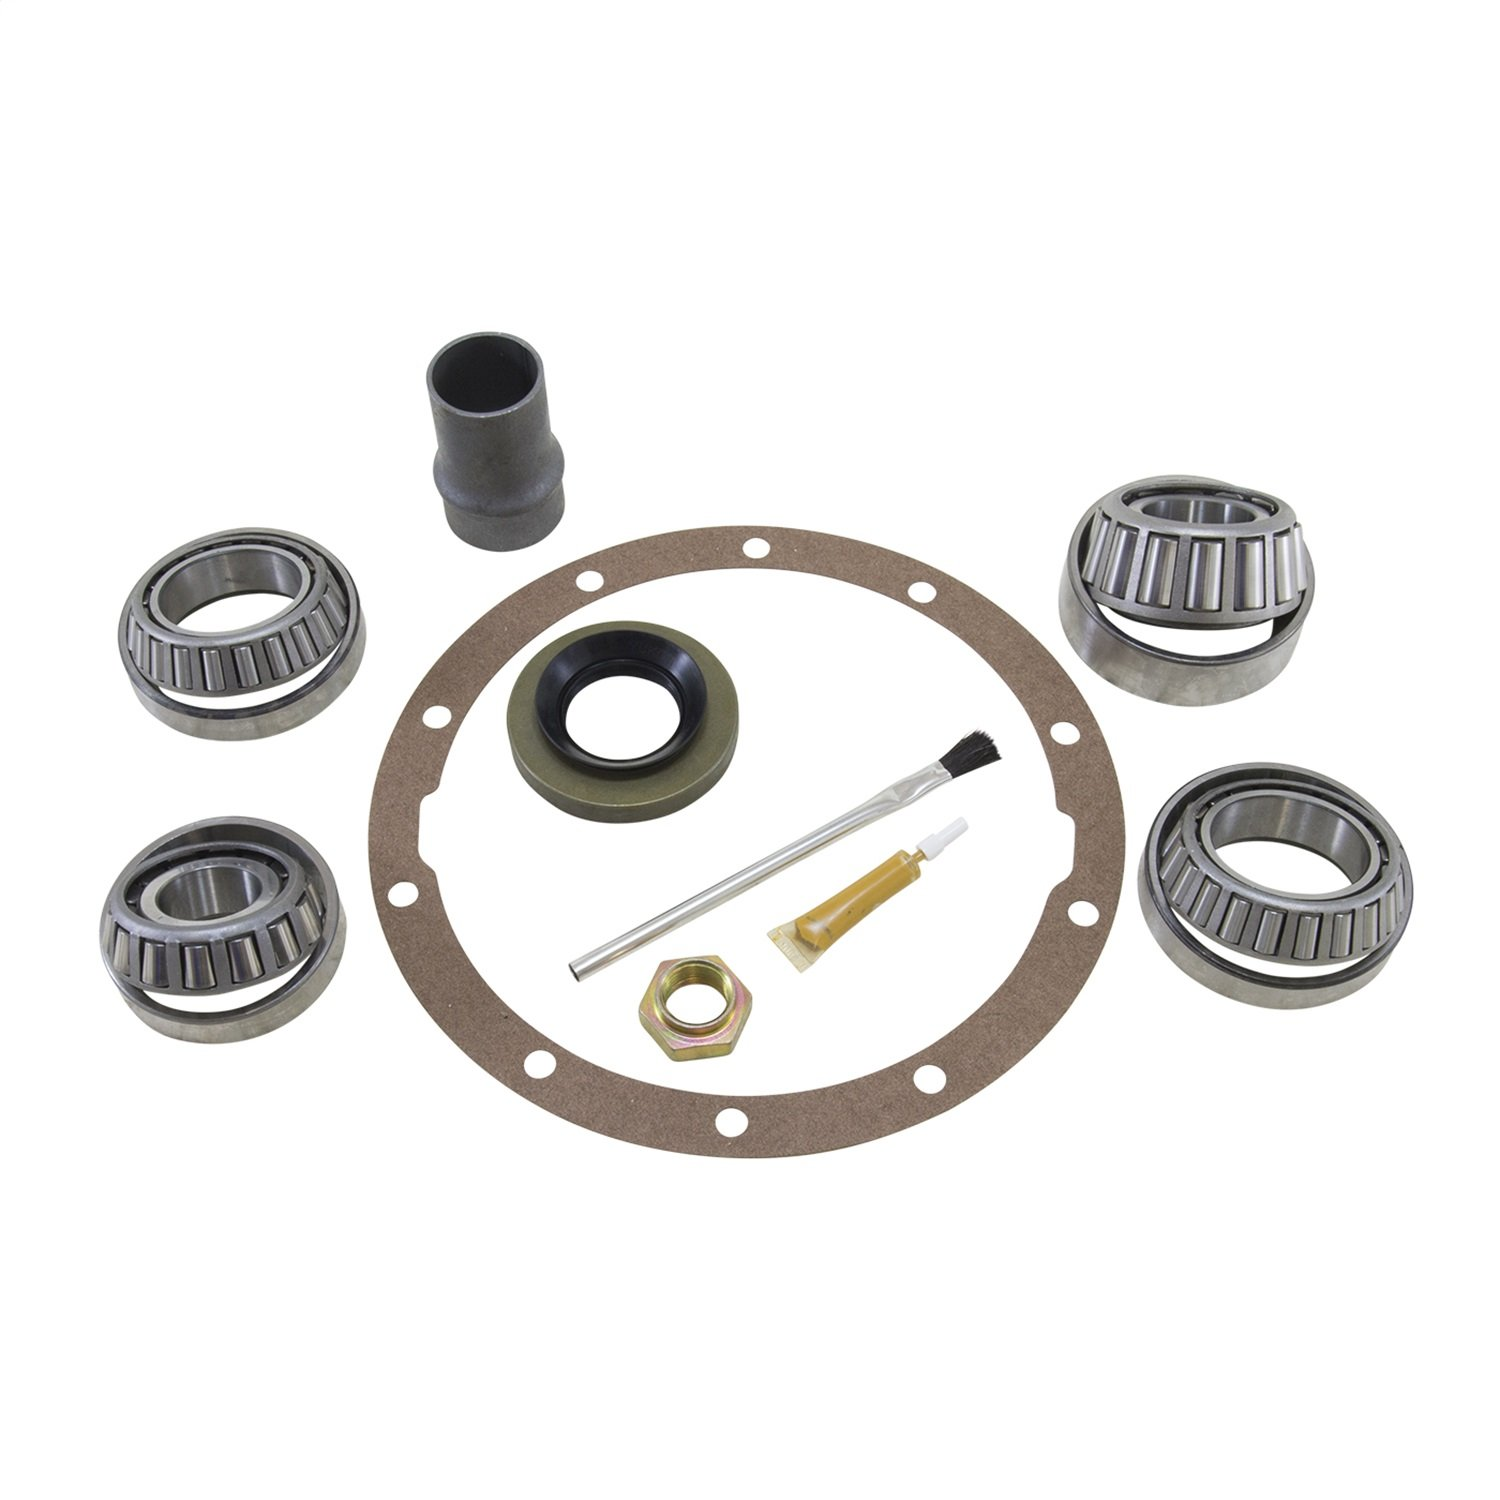 Yukon (BK T8-A) Bearing Installation Kit for Toyota 8'' Differential with Aftermarket Ring and Pinion by Yukon Gear